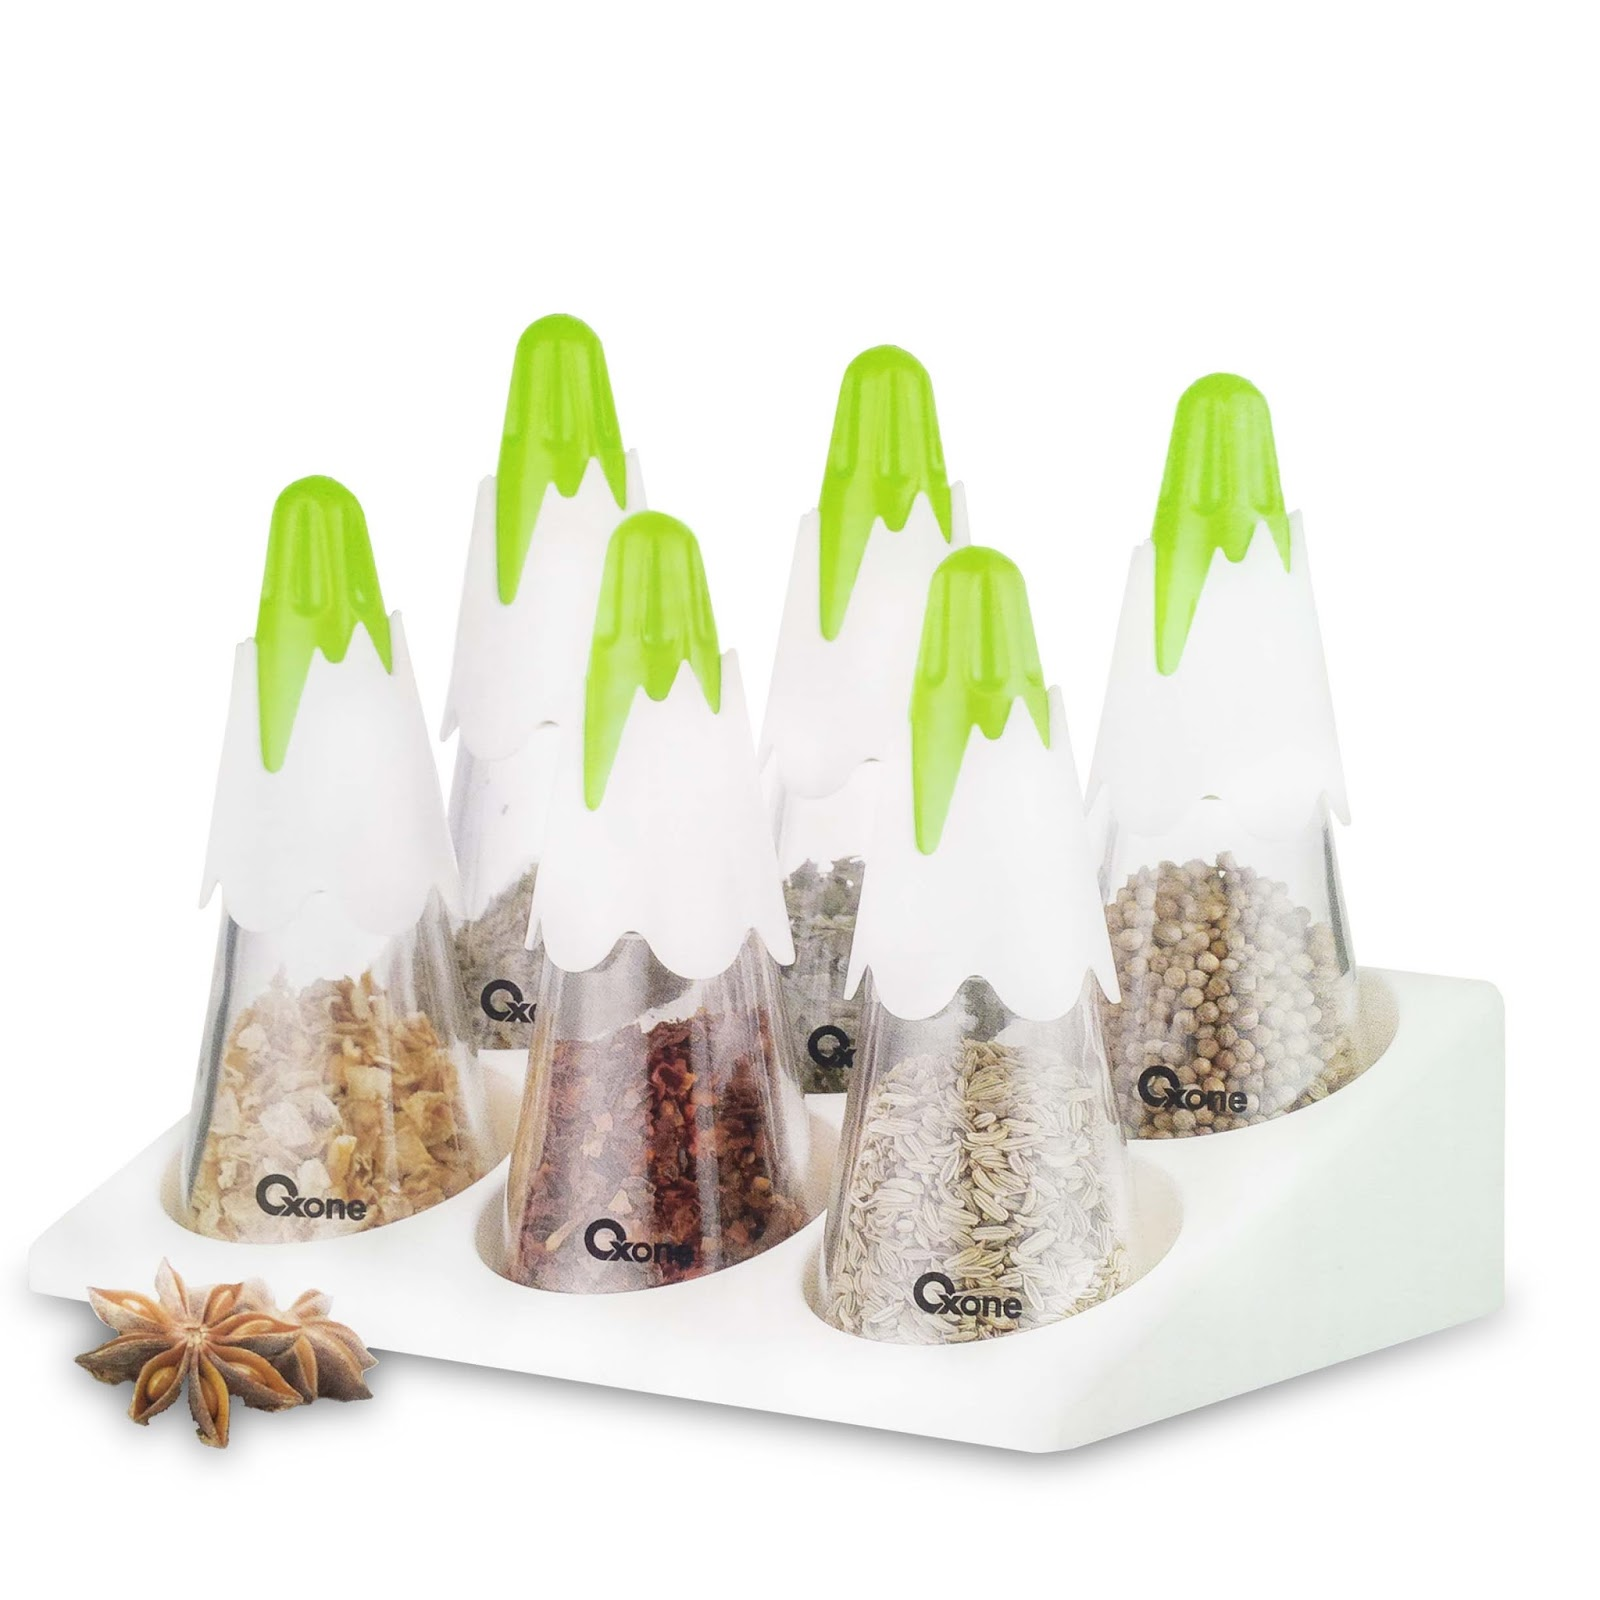 OX-341 Oxone Snowy Spice Set With Rack